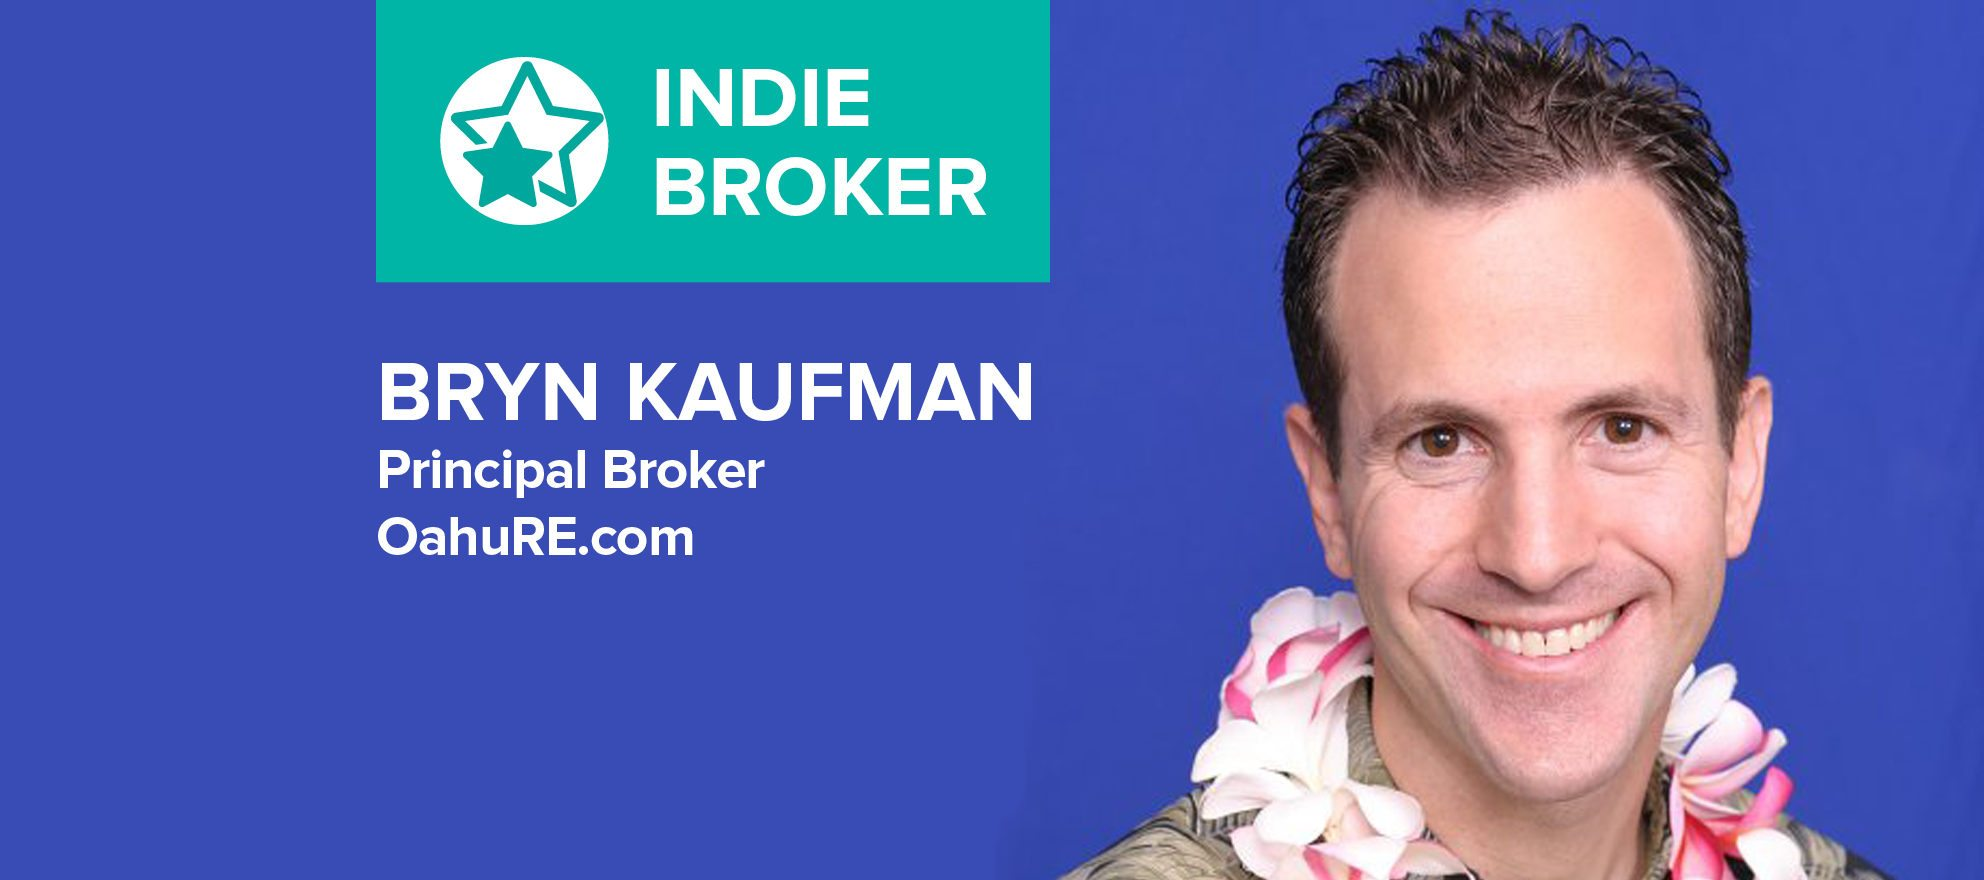 Bryn Kaufman: 'Our website is the backbone of our business'